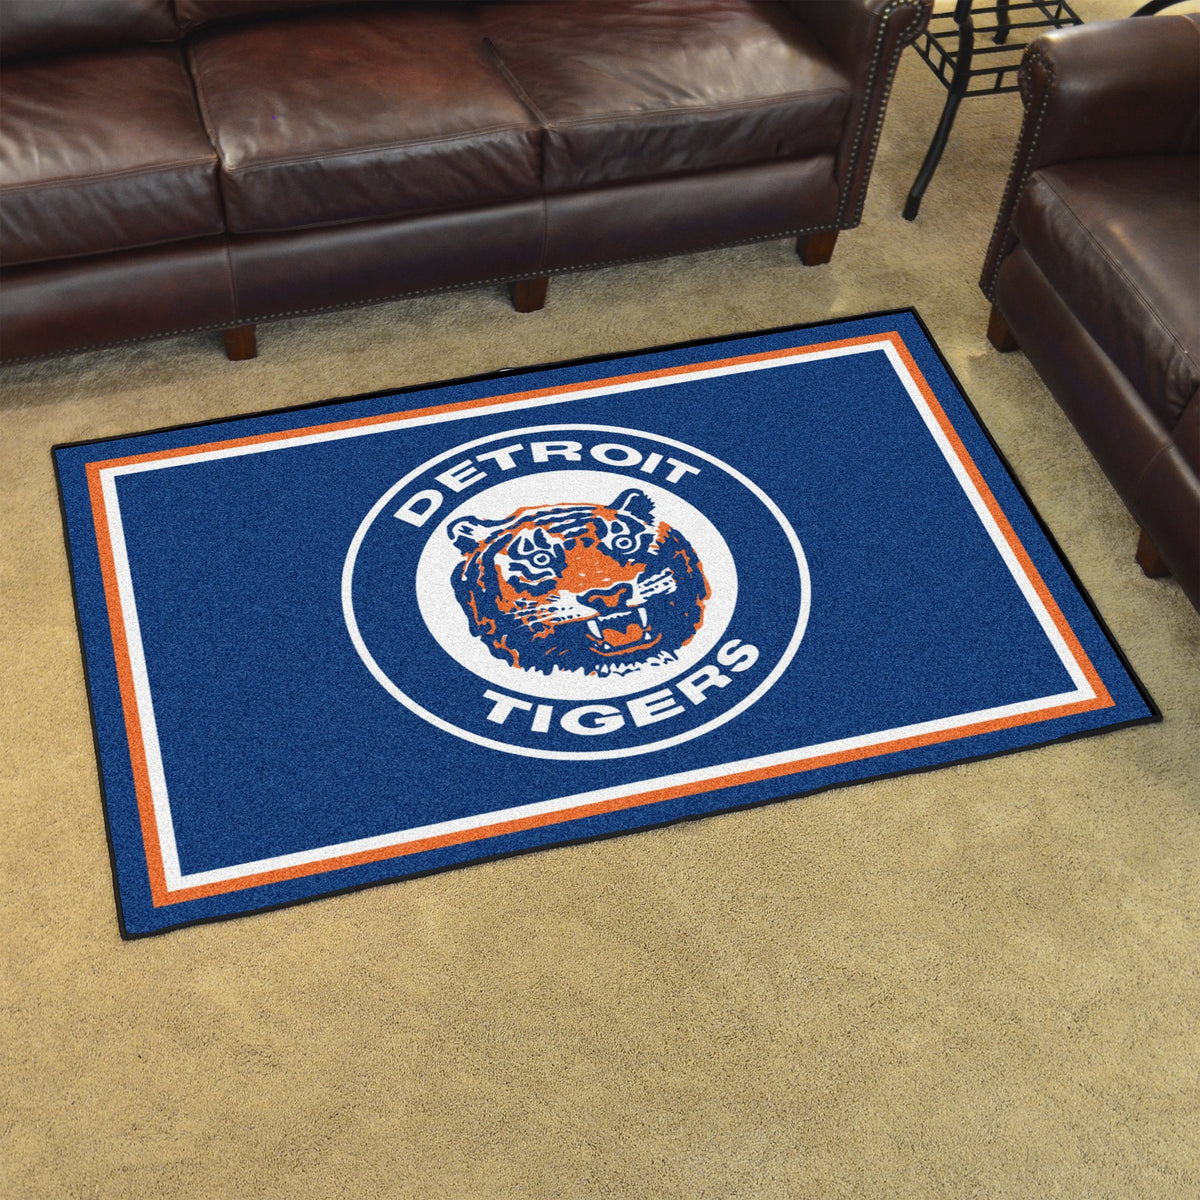 MLB Retro - 4' x 6' Rug MLB Retro Mats, Plush Rugs, 4x6 Rug, MLB, Home Fan Mats Detroit Tigers